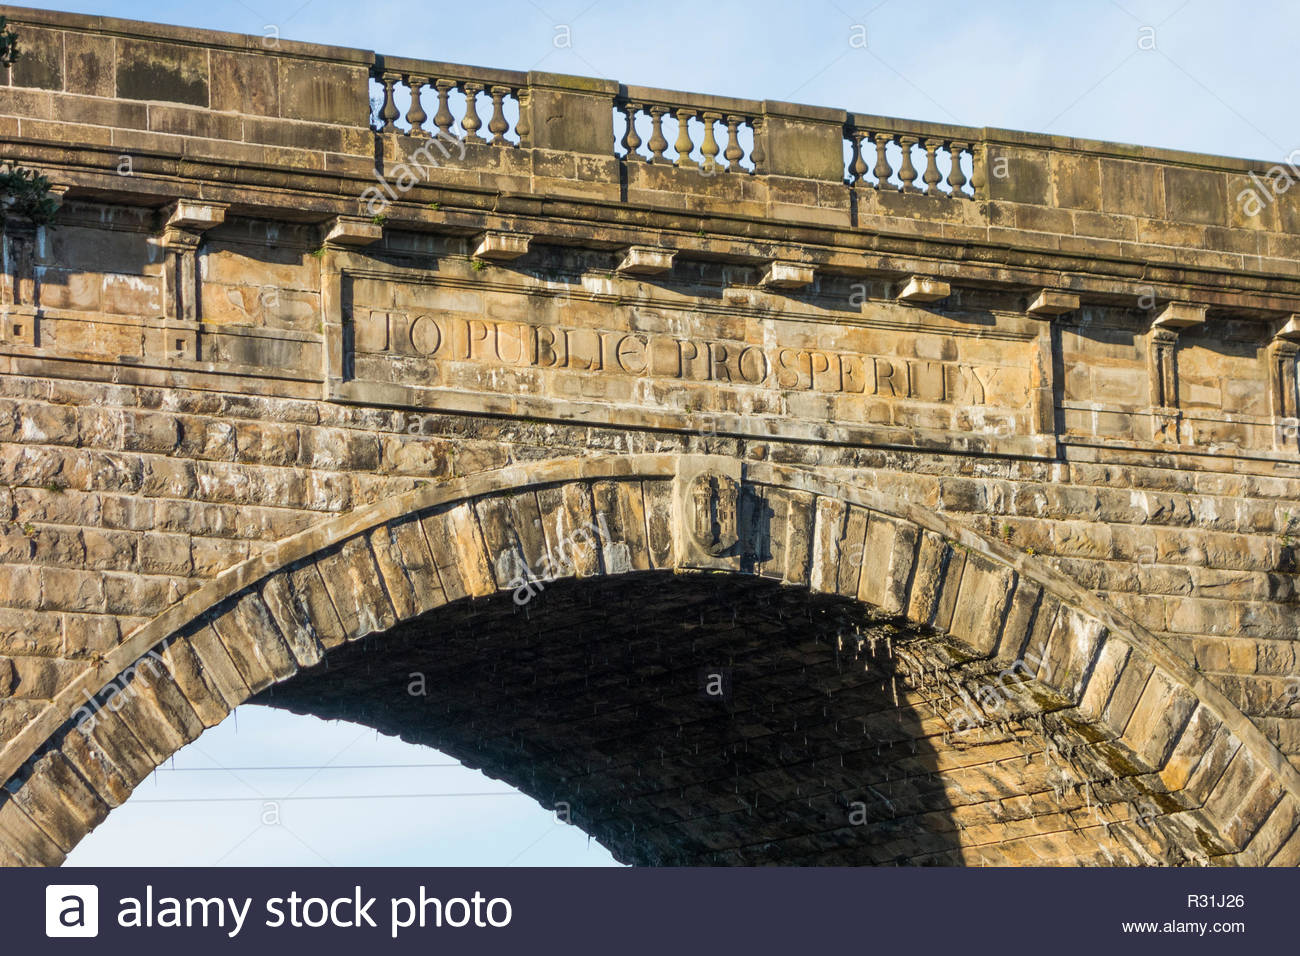 Inscription on the arch of the Lune Aqueduct over the River Lune at Lancaster UK - To Public Prosperity - Stock Image